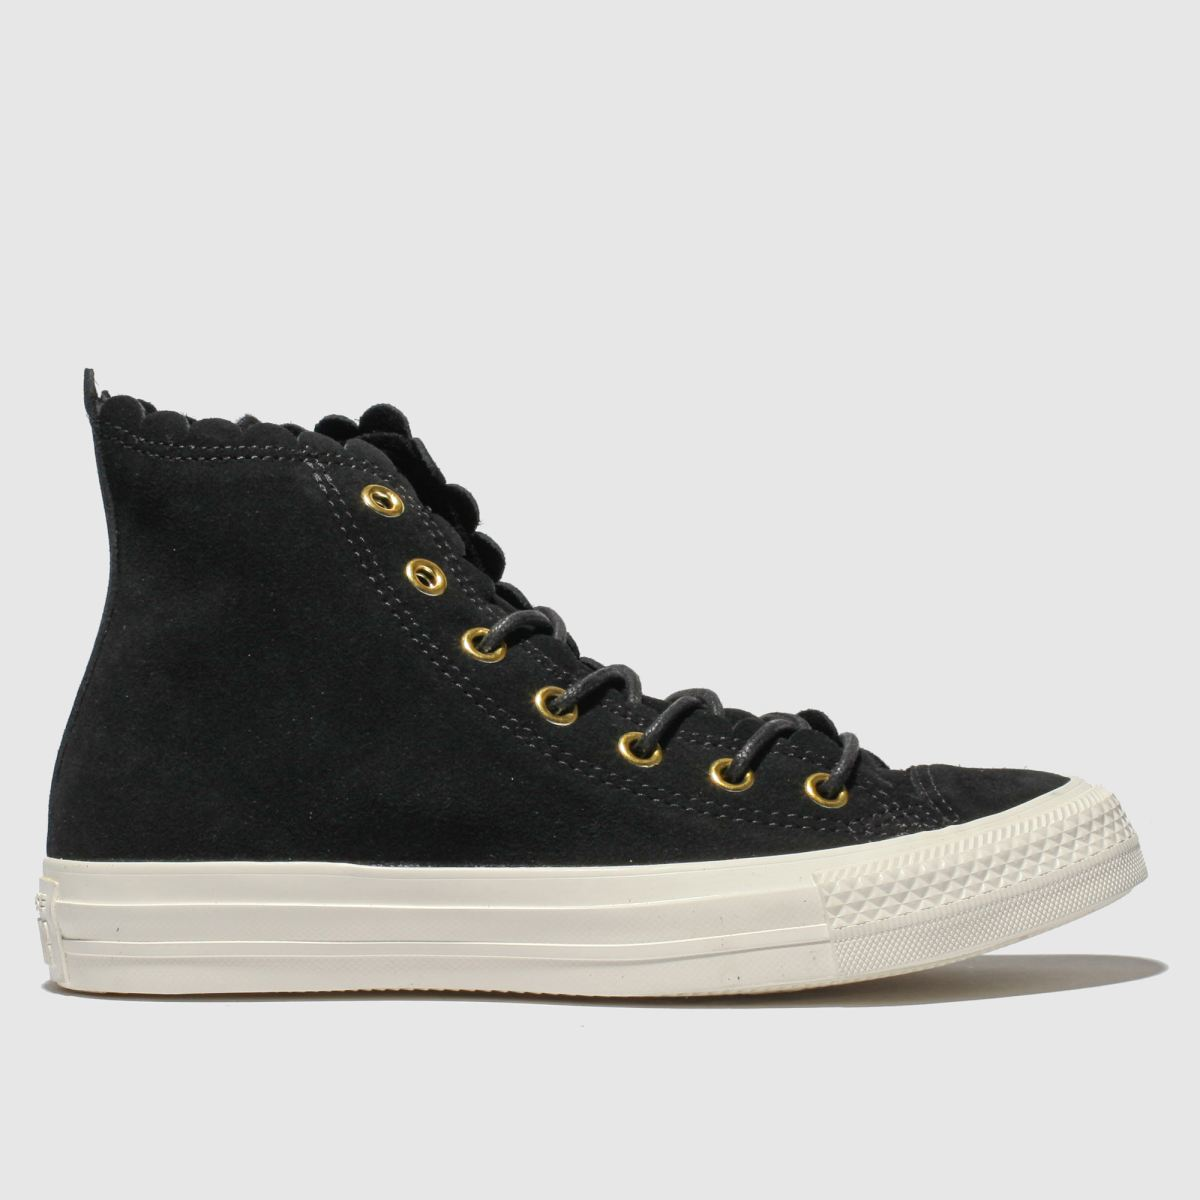 Converse Black All Star Hi Frilly Thrills Trainers